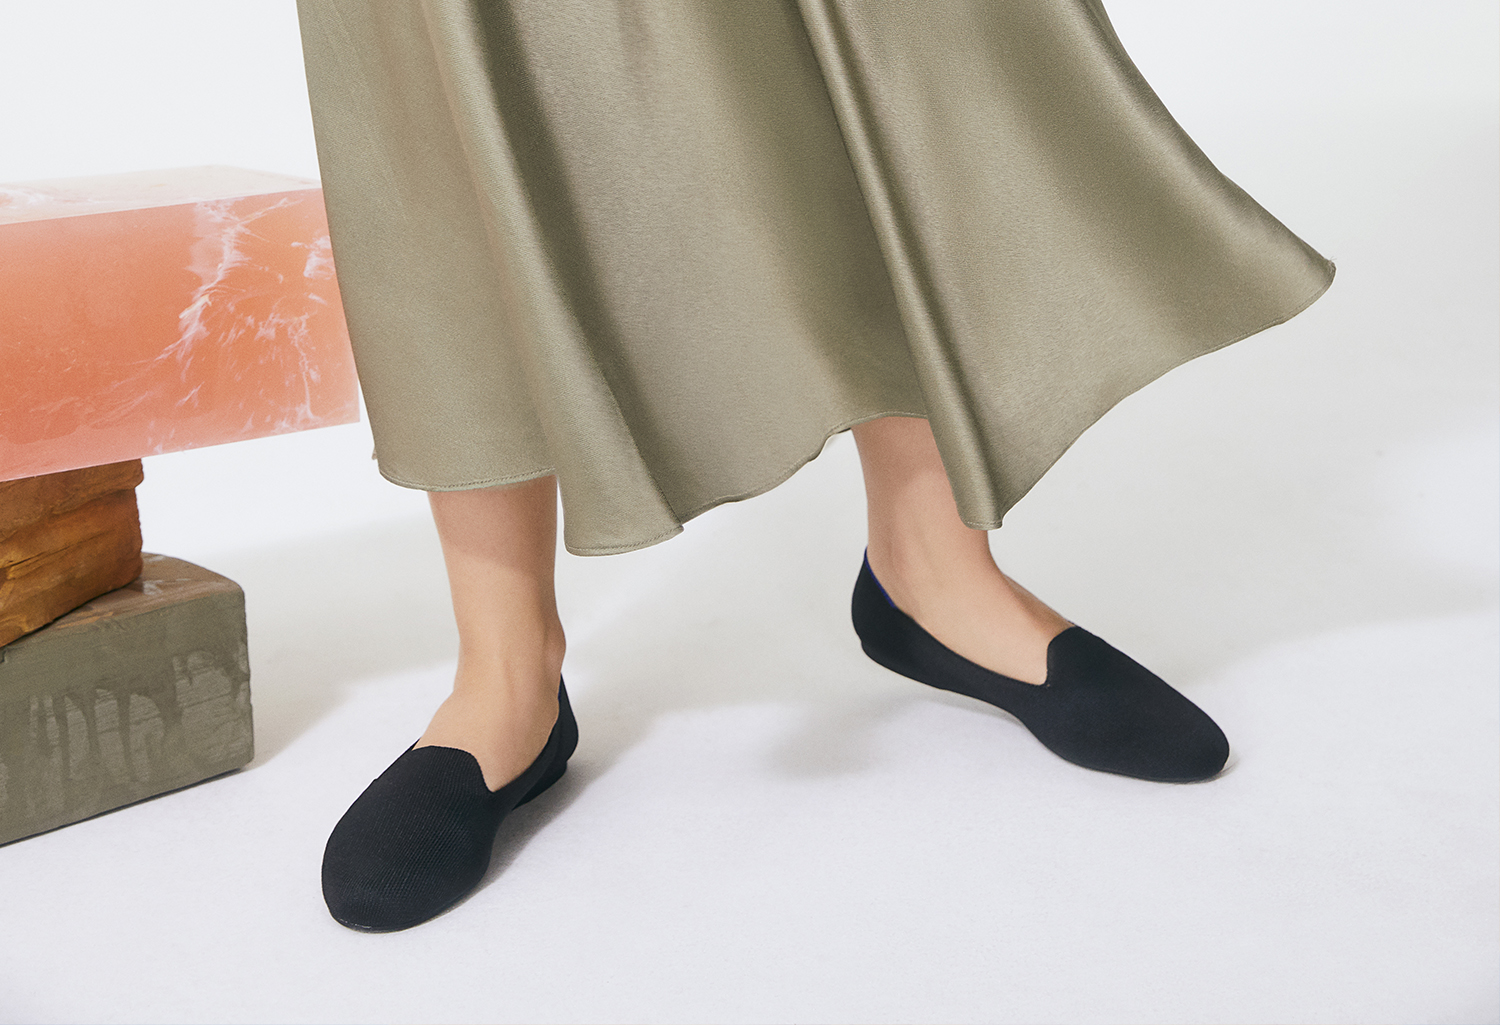 The Loafer in Black shown on-model in a set.